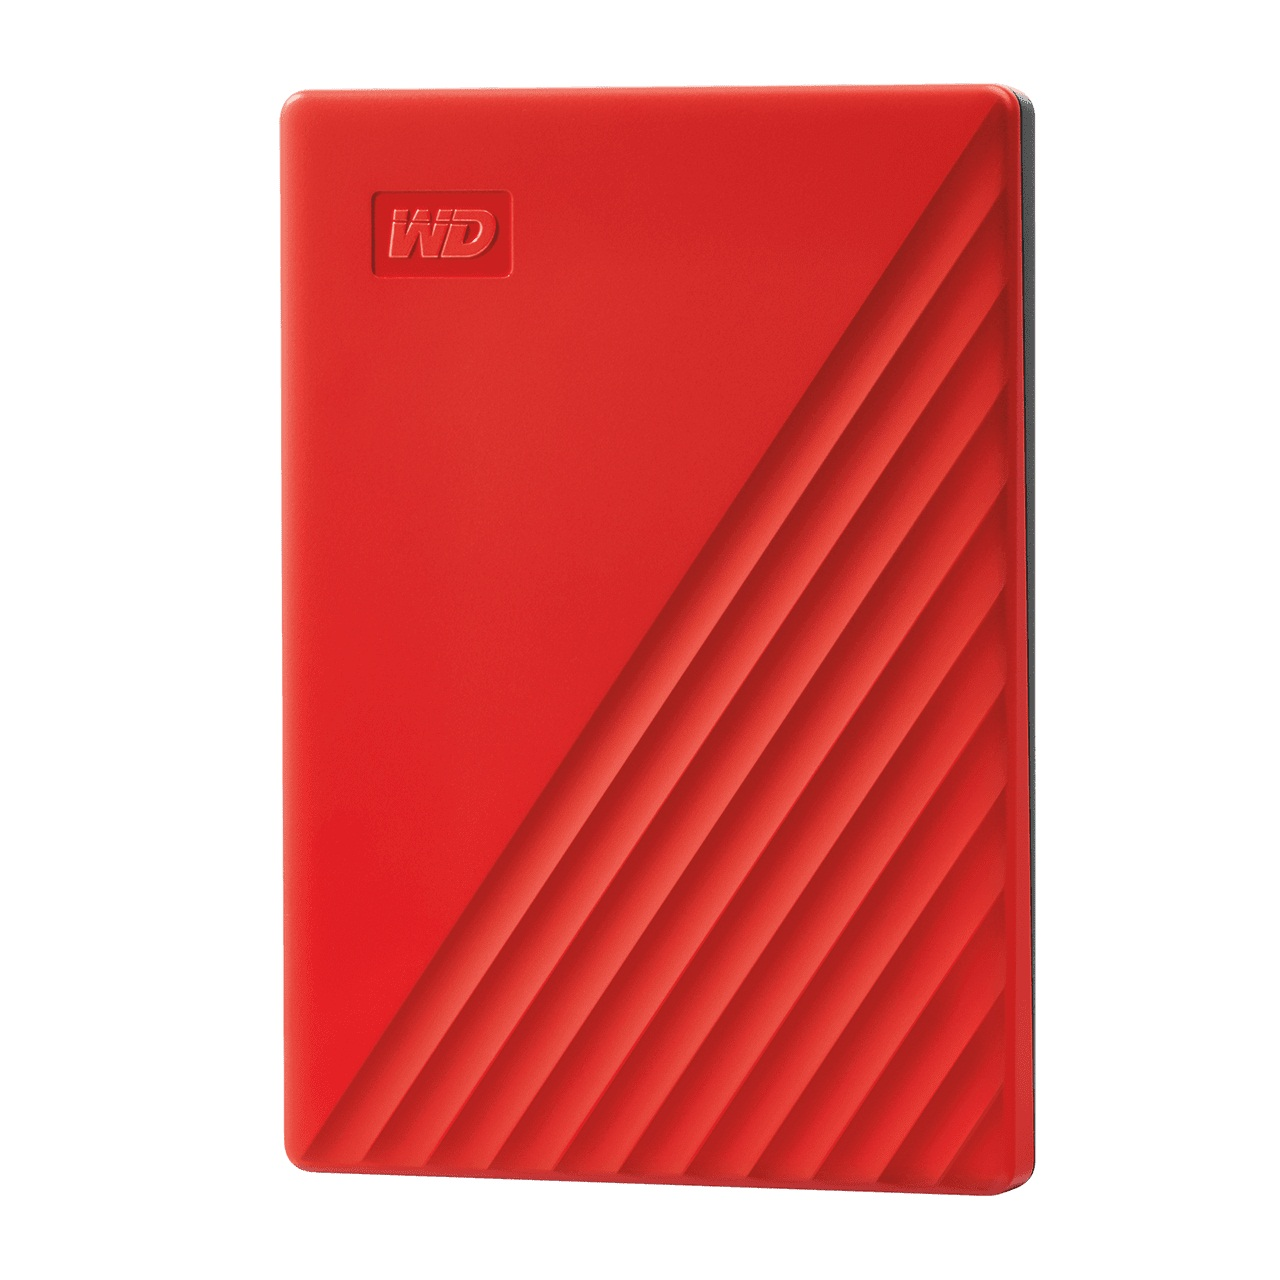 Western-Digital-WD-2TB-My-Passport-2020-3-2-Portable-Hard-Drive-HDD-All-Color-DI thumbnail 13